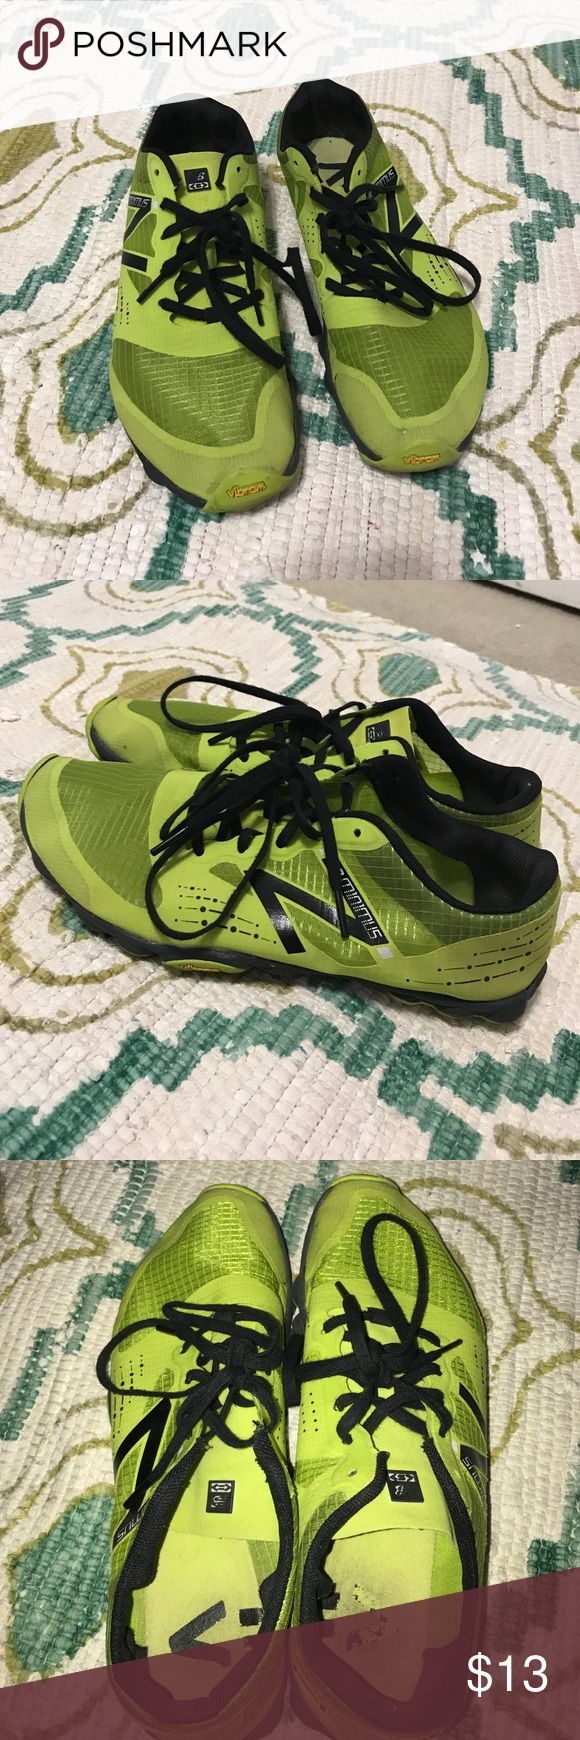 New Balance tennis shoes New Balance Minimus lime green shoes with Vibram soles. Used, but in good condition. Fast shipping!! New Balance Shoes Sneakers